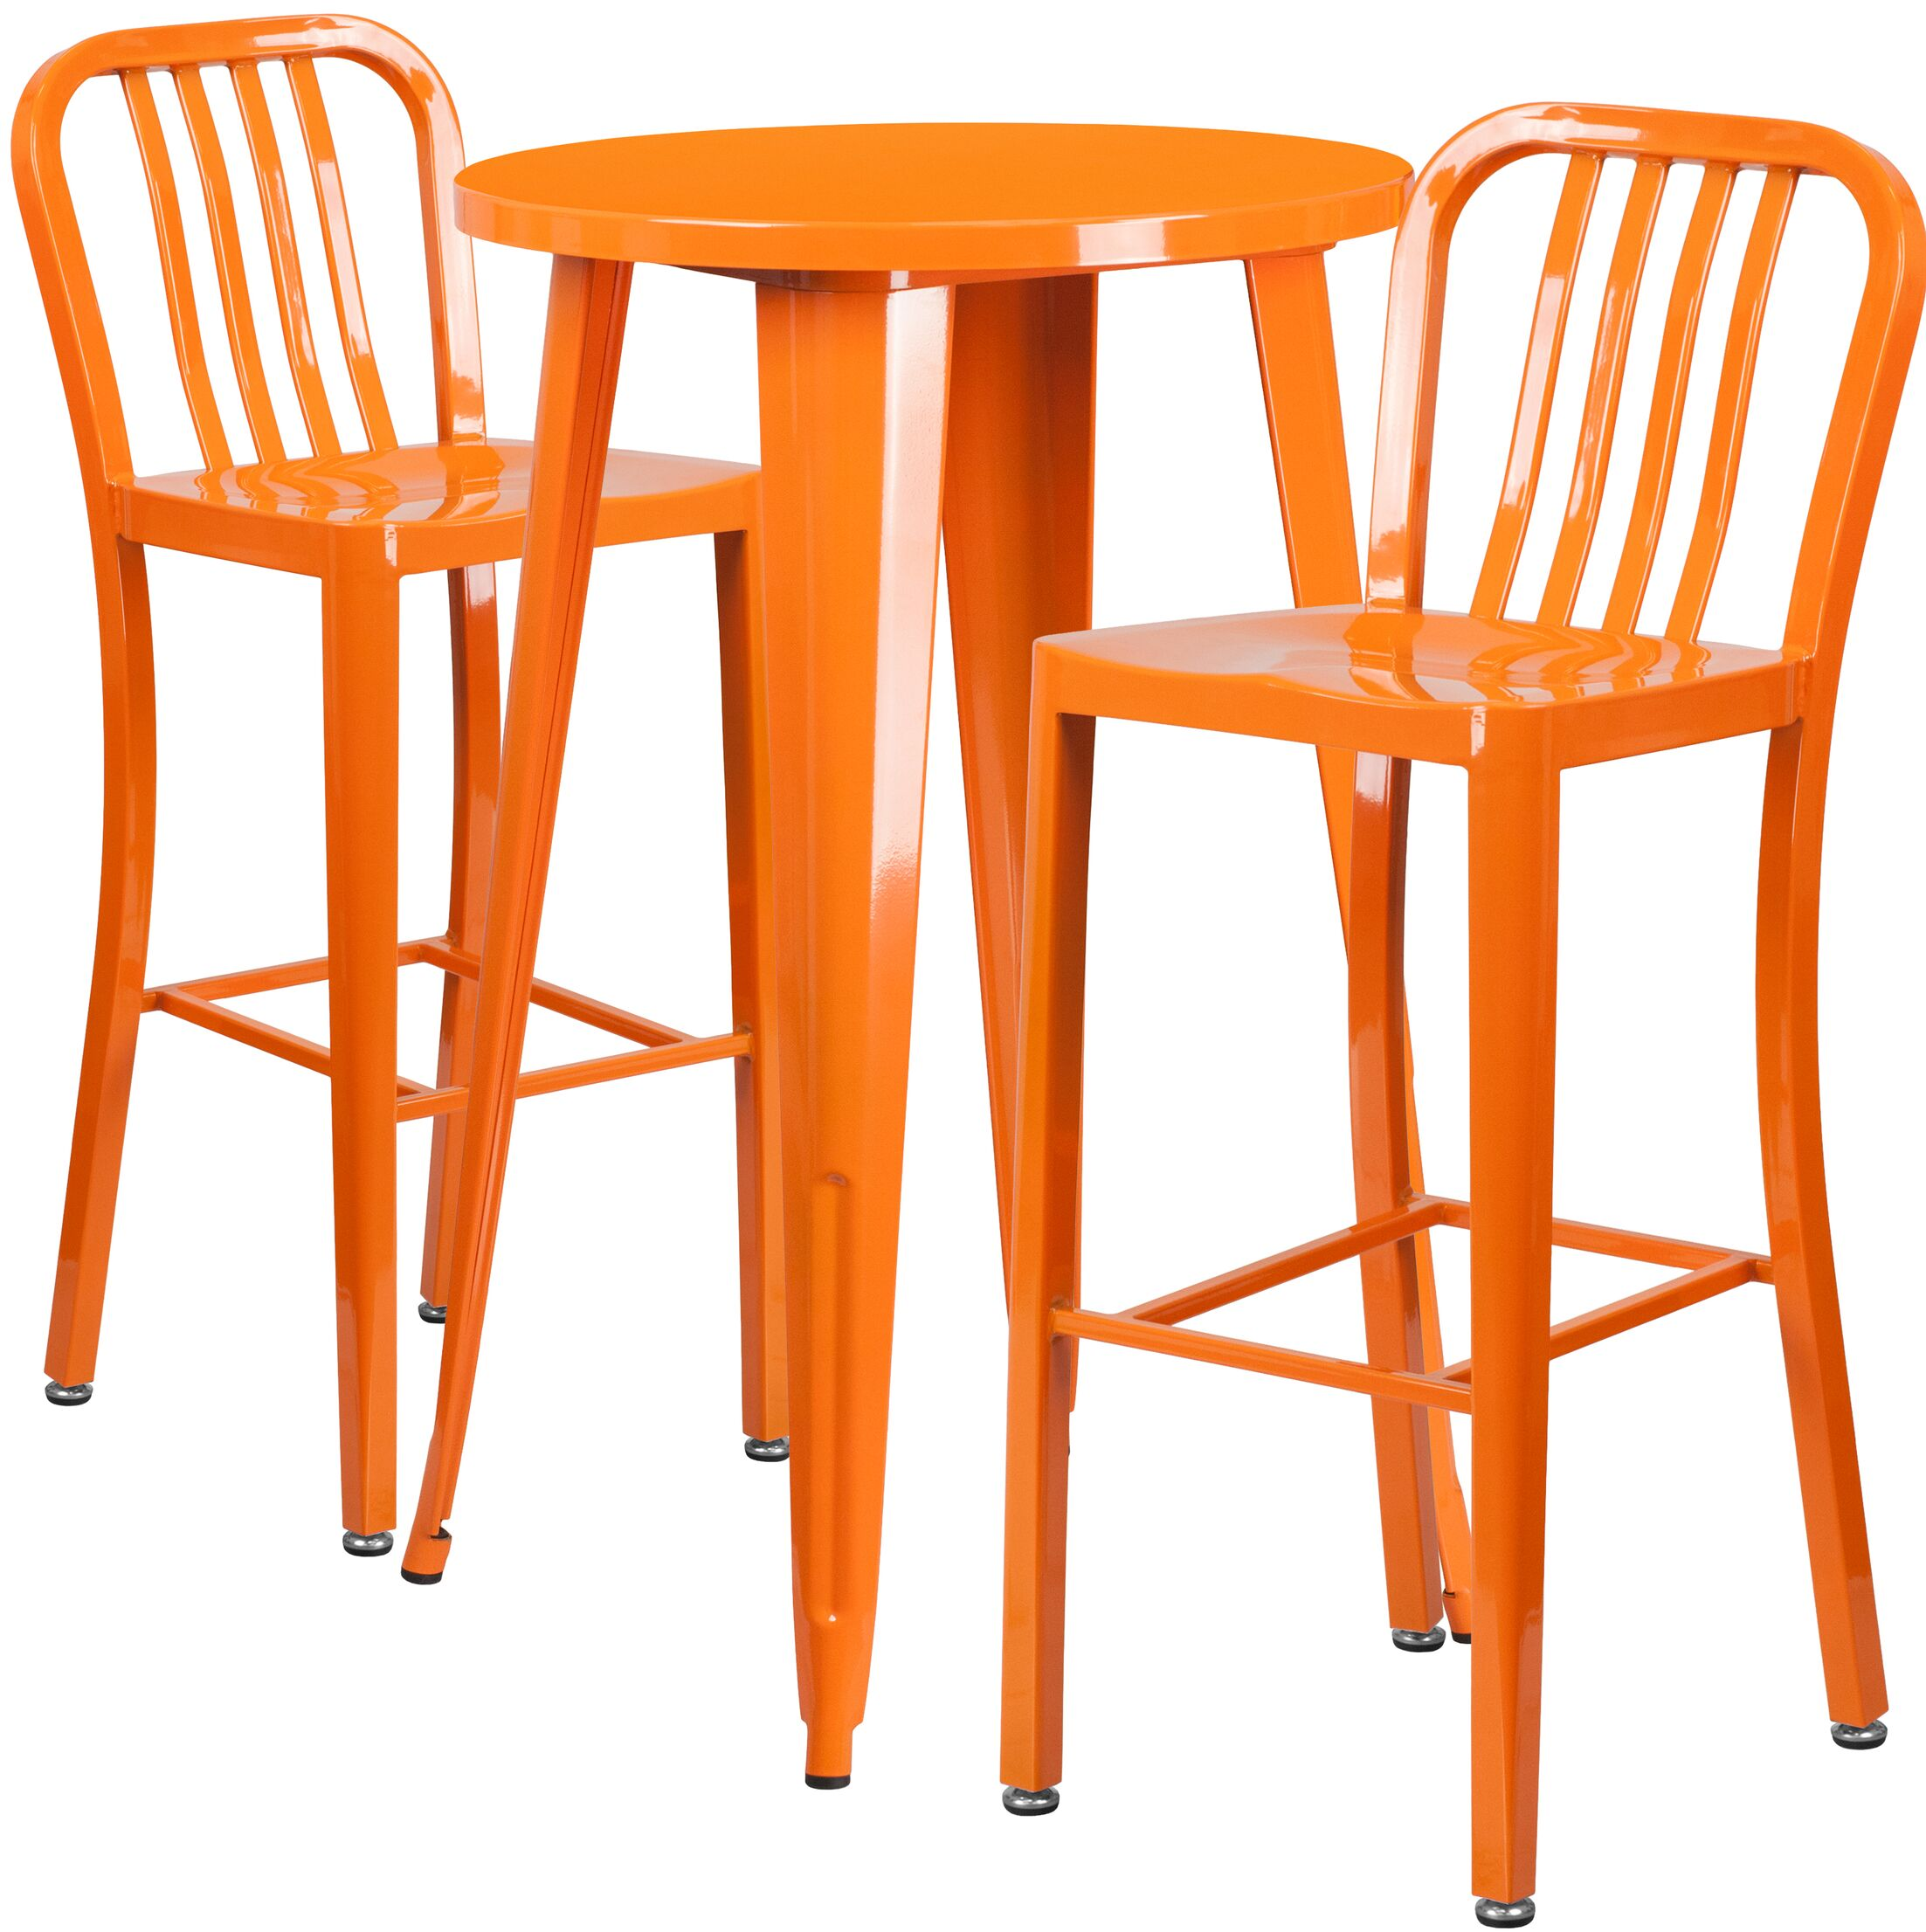 Sass 3 Piece Bar Height Dining Set Finish: Orange